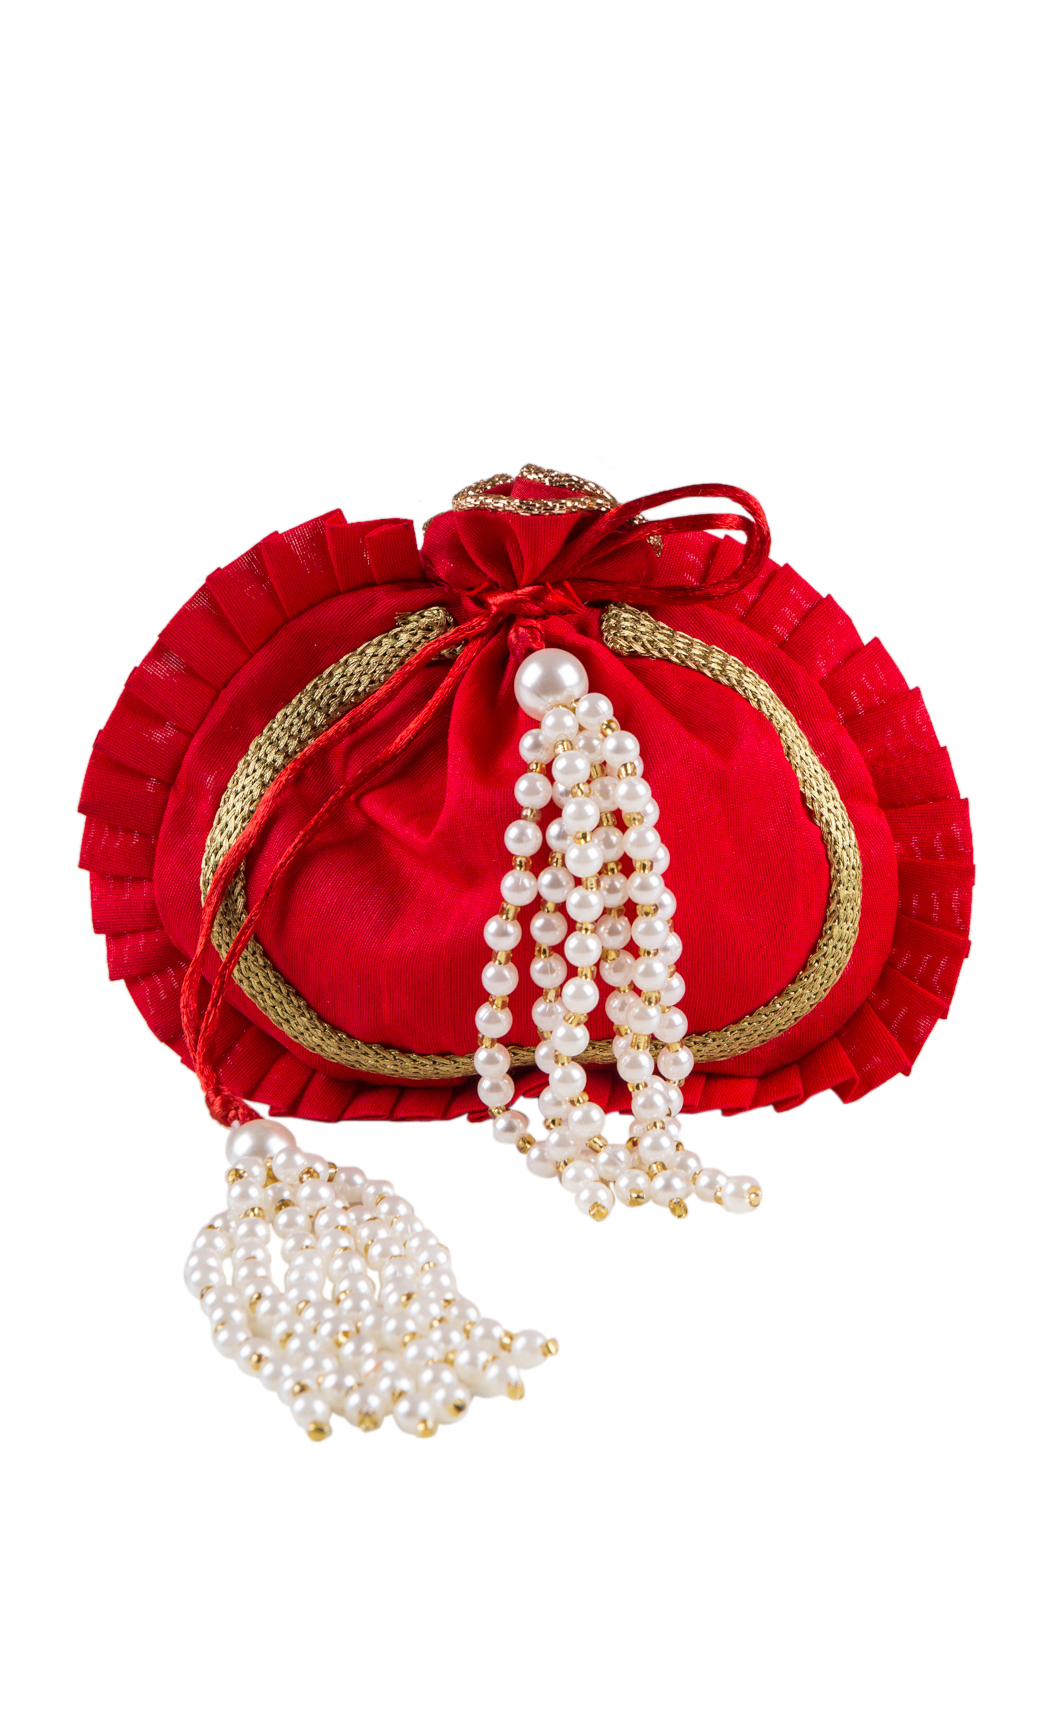 Red Round Potli with Gold Gota Work and Pearl Tassels - Buy Online